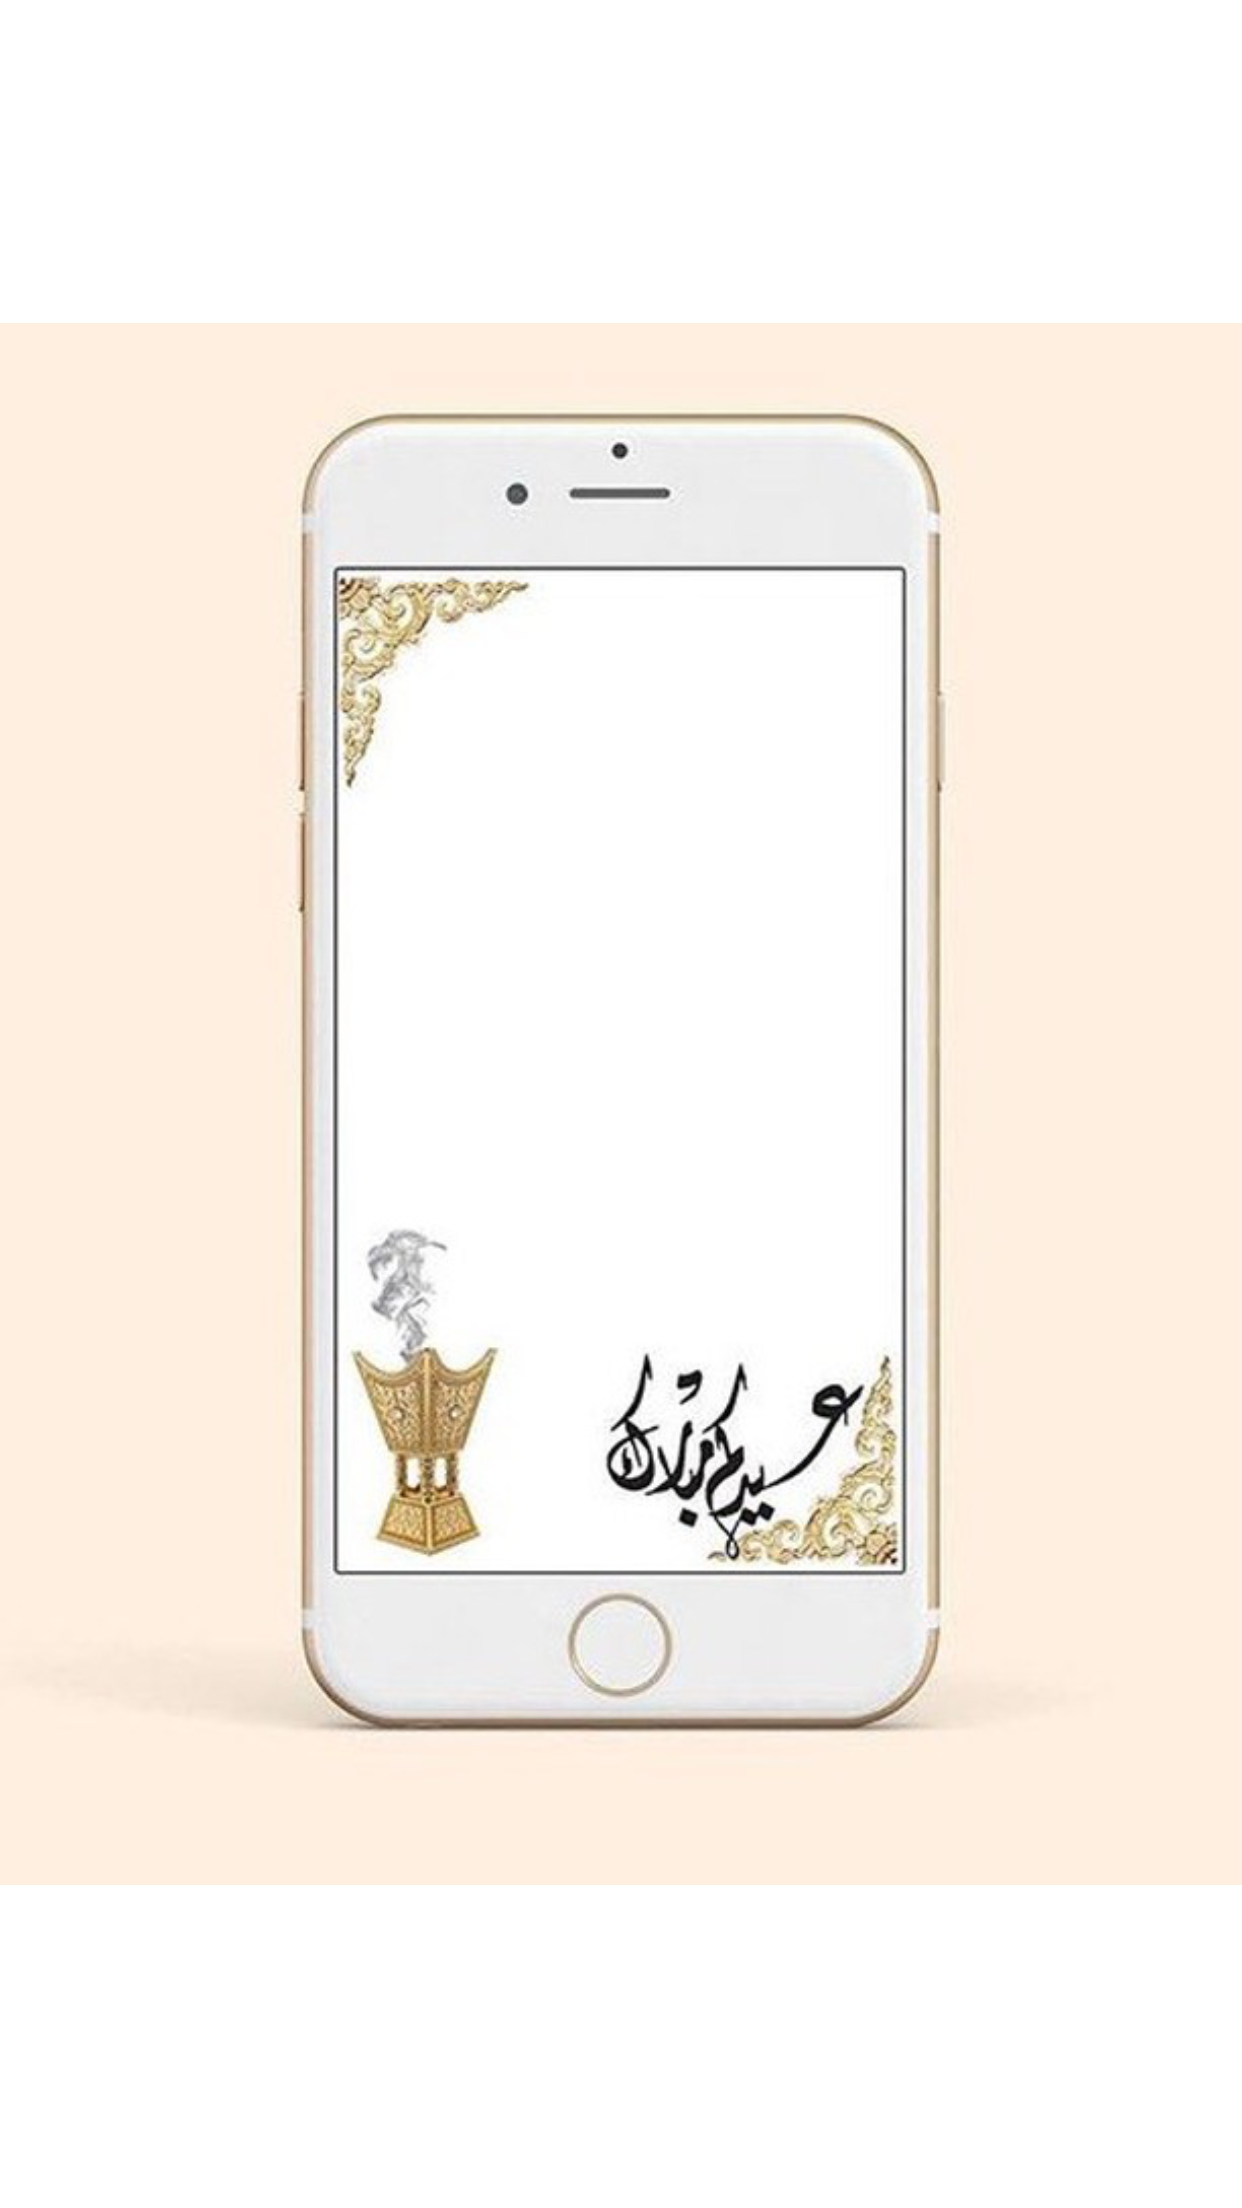 Pin By Marim On Art Snapchat Filter Design Snapchat Filters Snap Filters